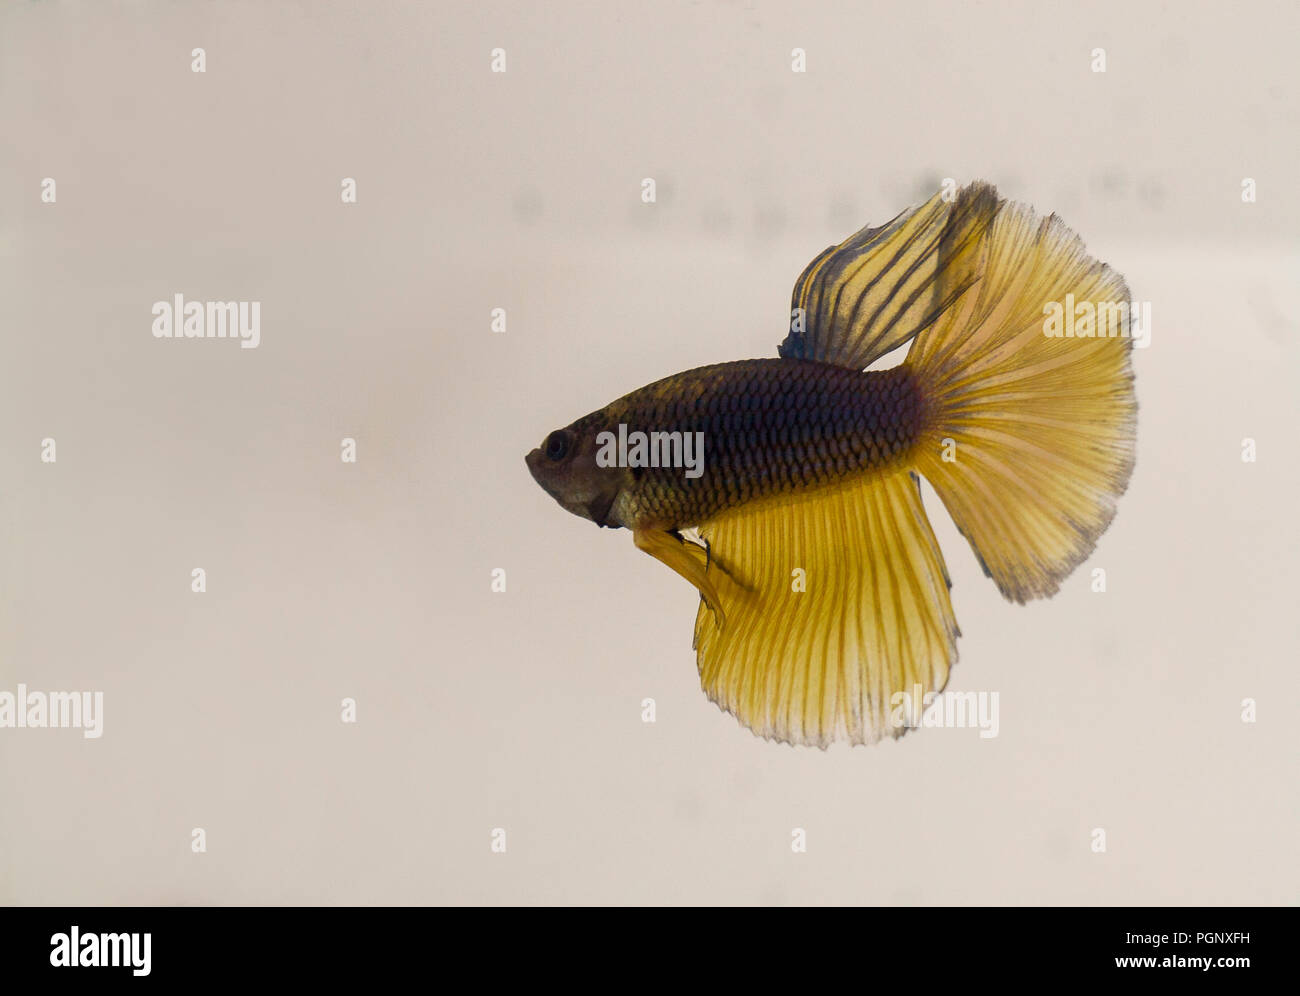 Siamese Fighting Fish Blue Yellow Halfmoon Betta Splendens with reflection. The fish is naturally endemic to Thailand and can be found in shallow area Stock Photo